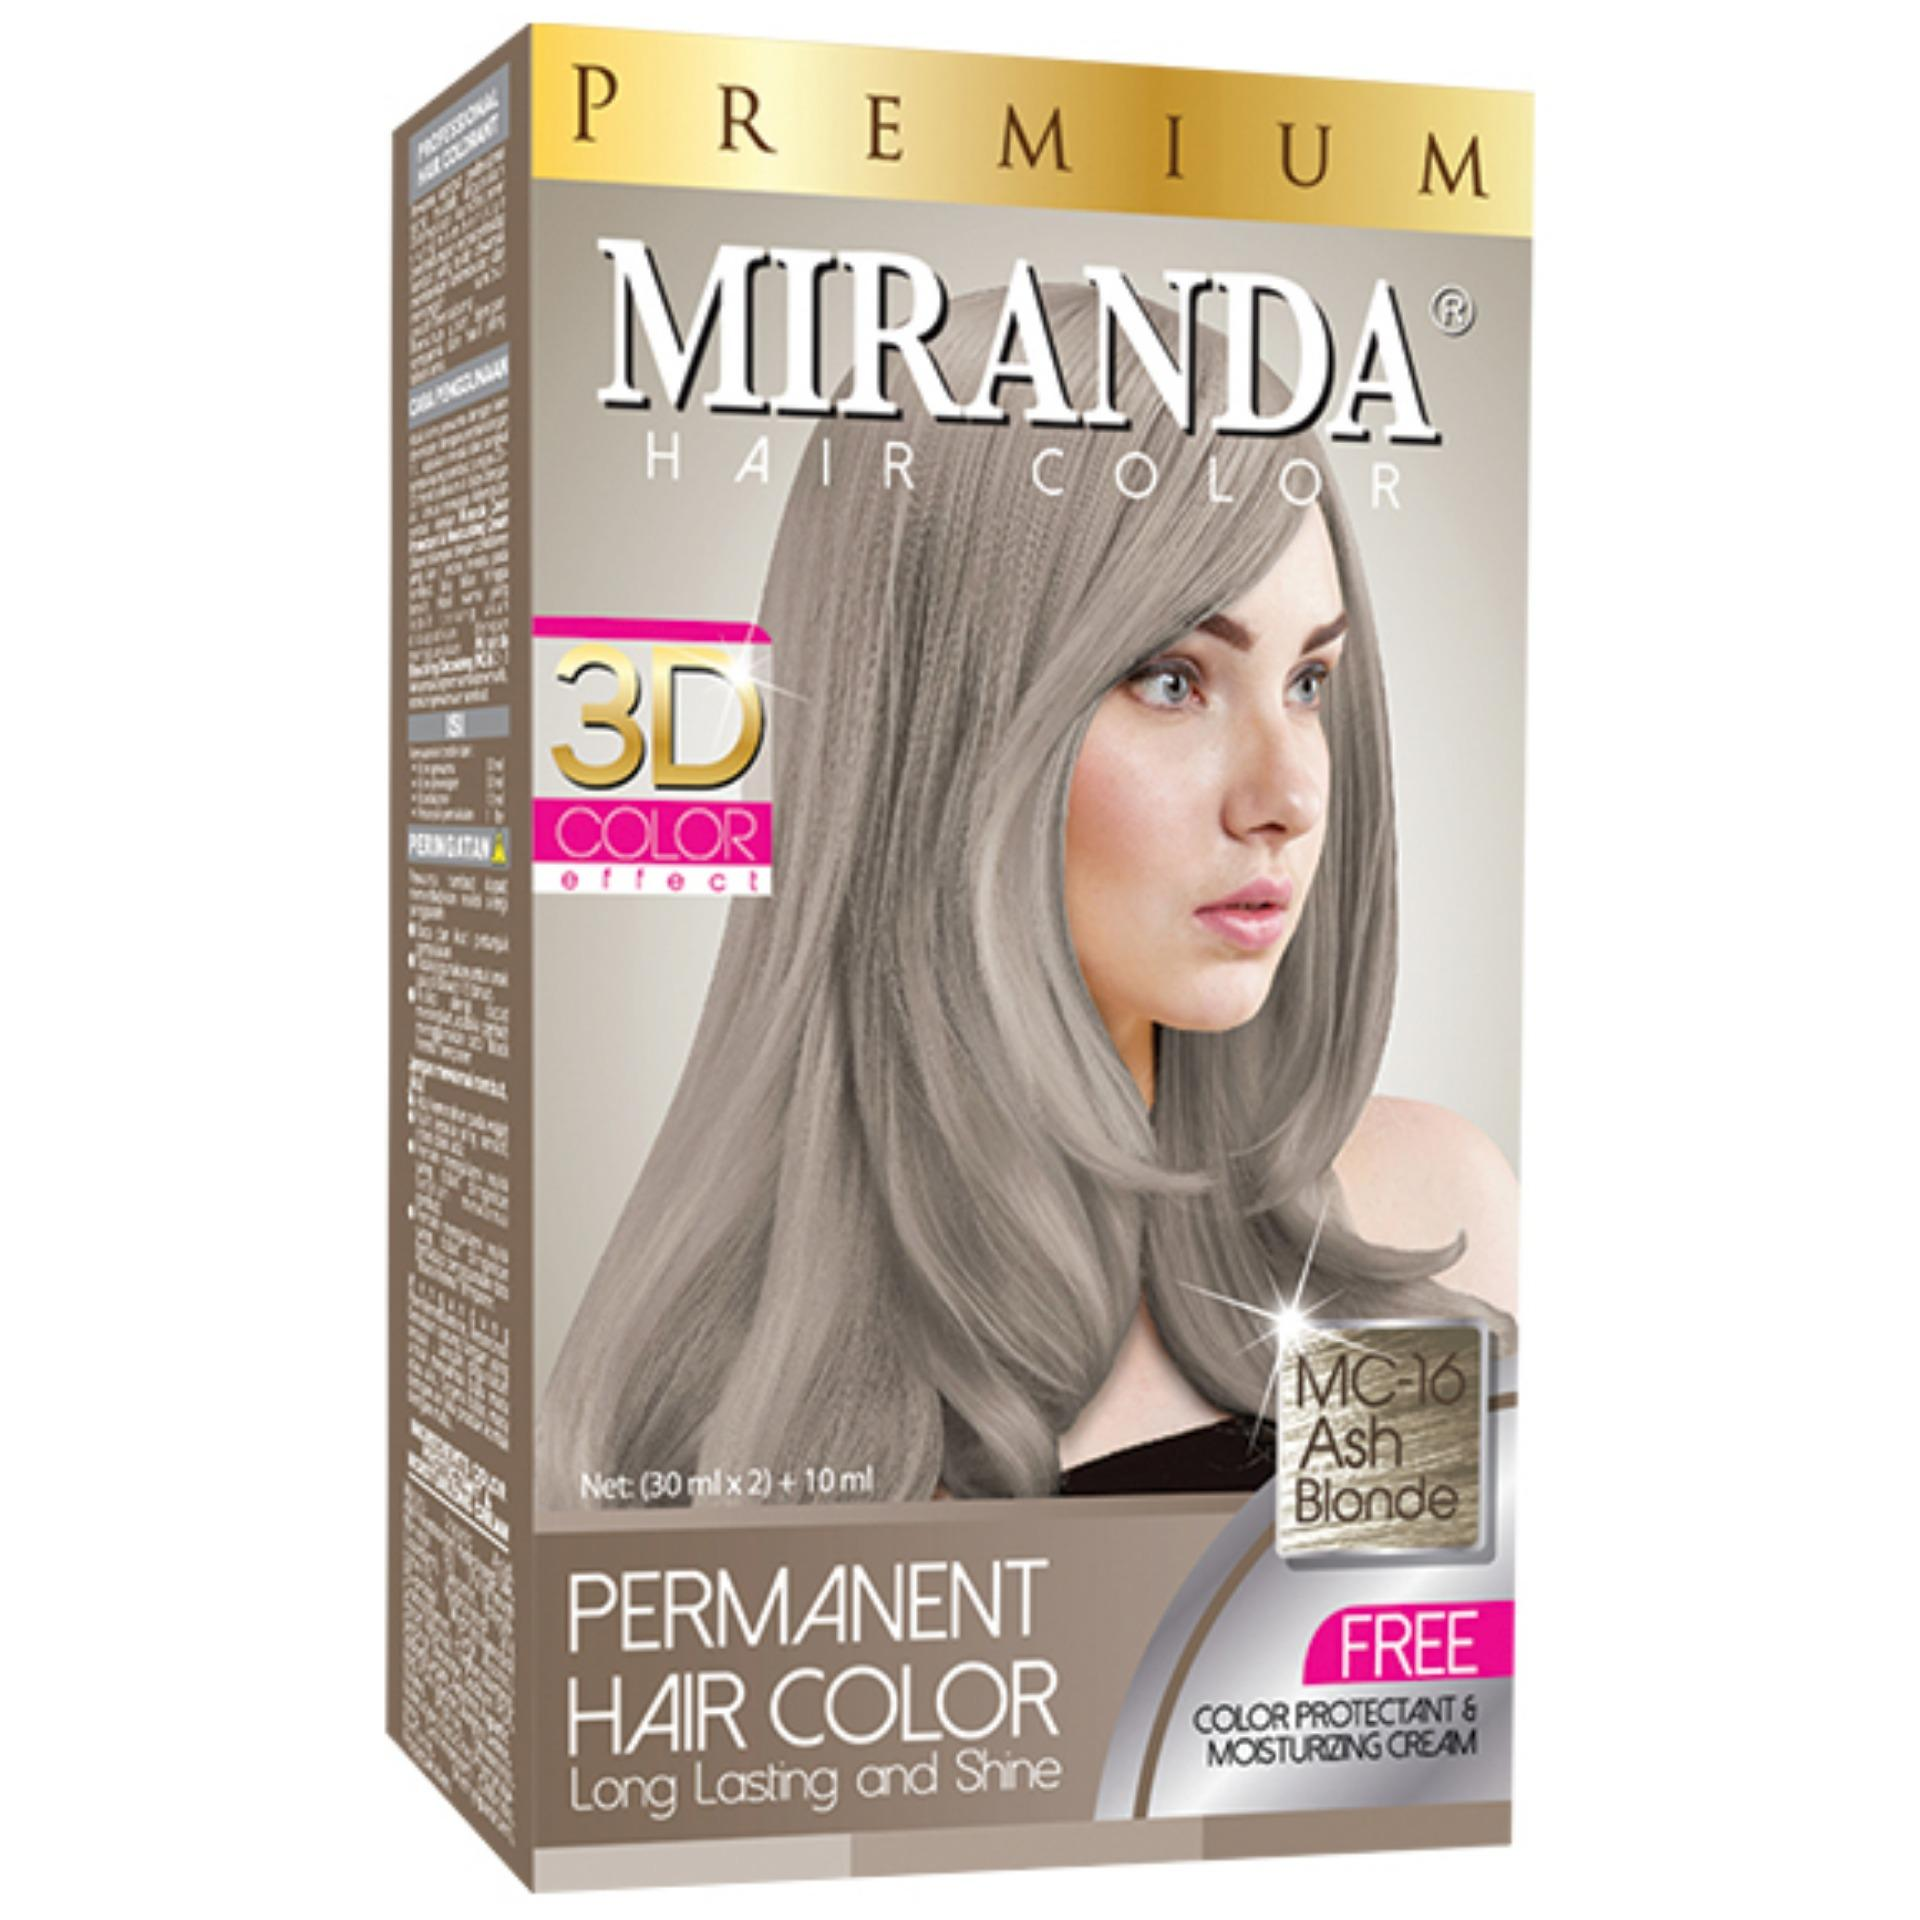 Miranda Permanent Hair Color Cat Rambut MC-16 - Ash Blonde